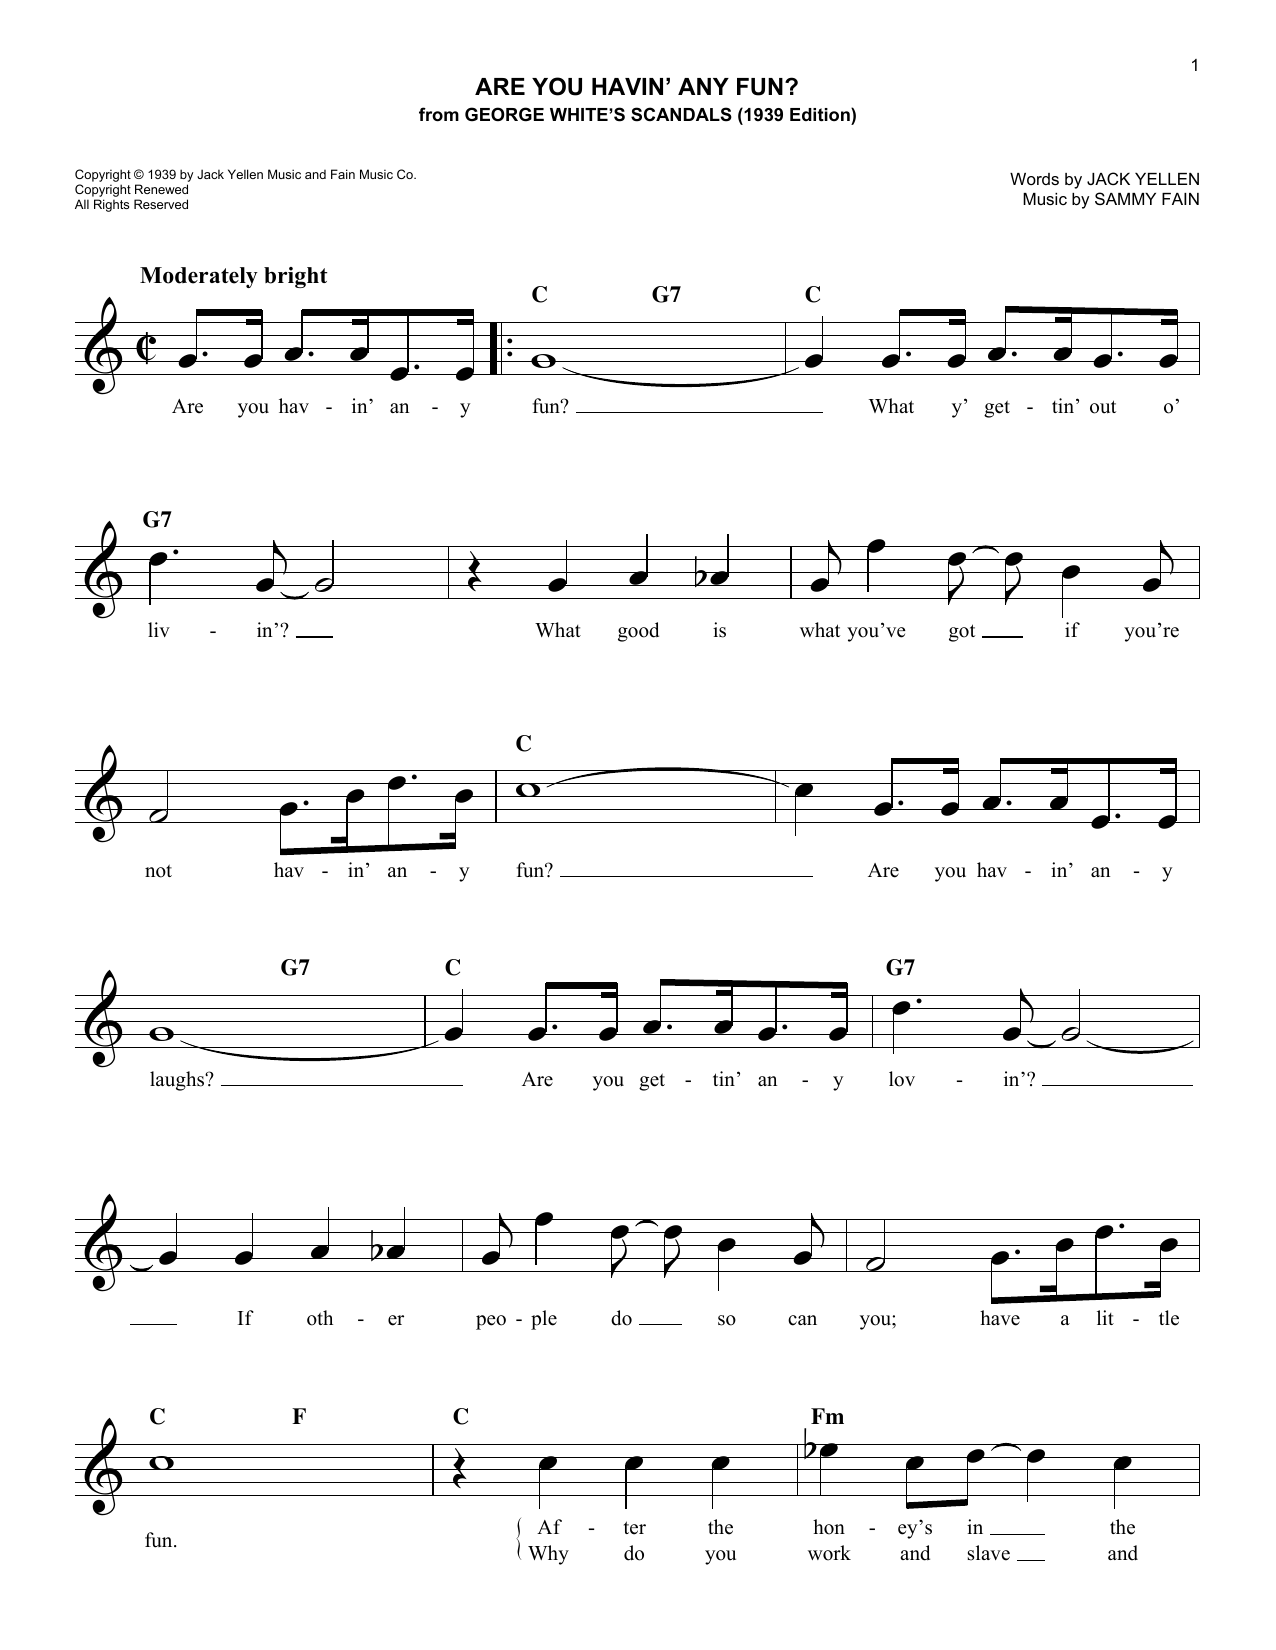 Are You Havin' Any Fun? Sheet Music